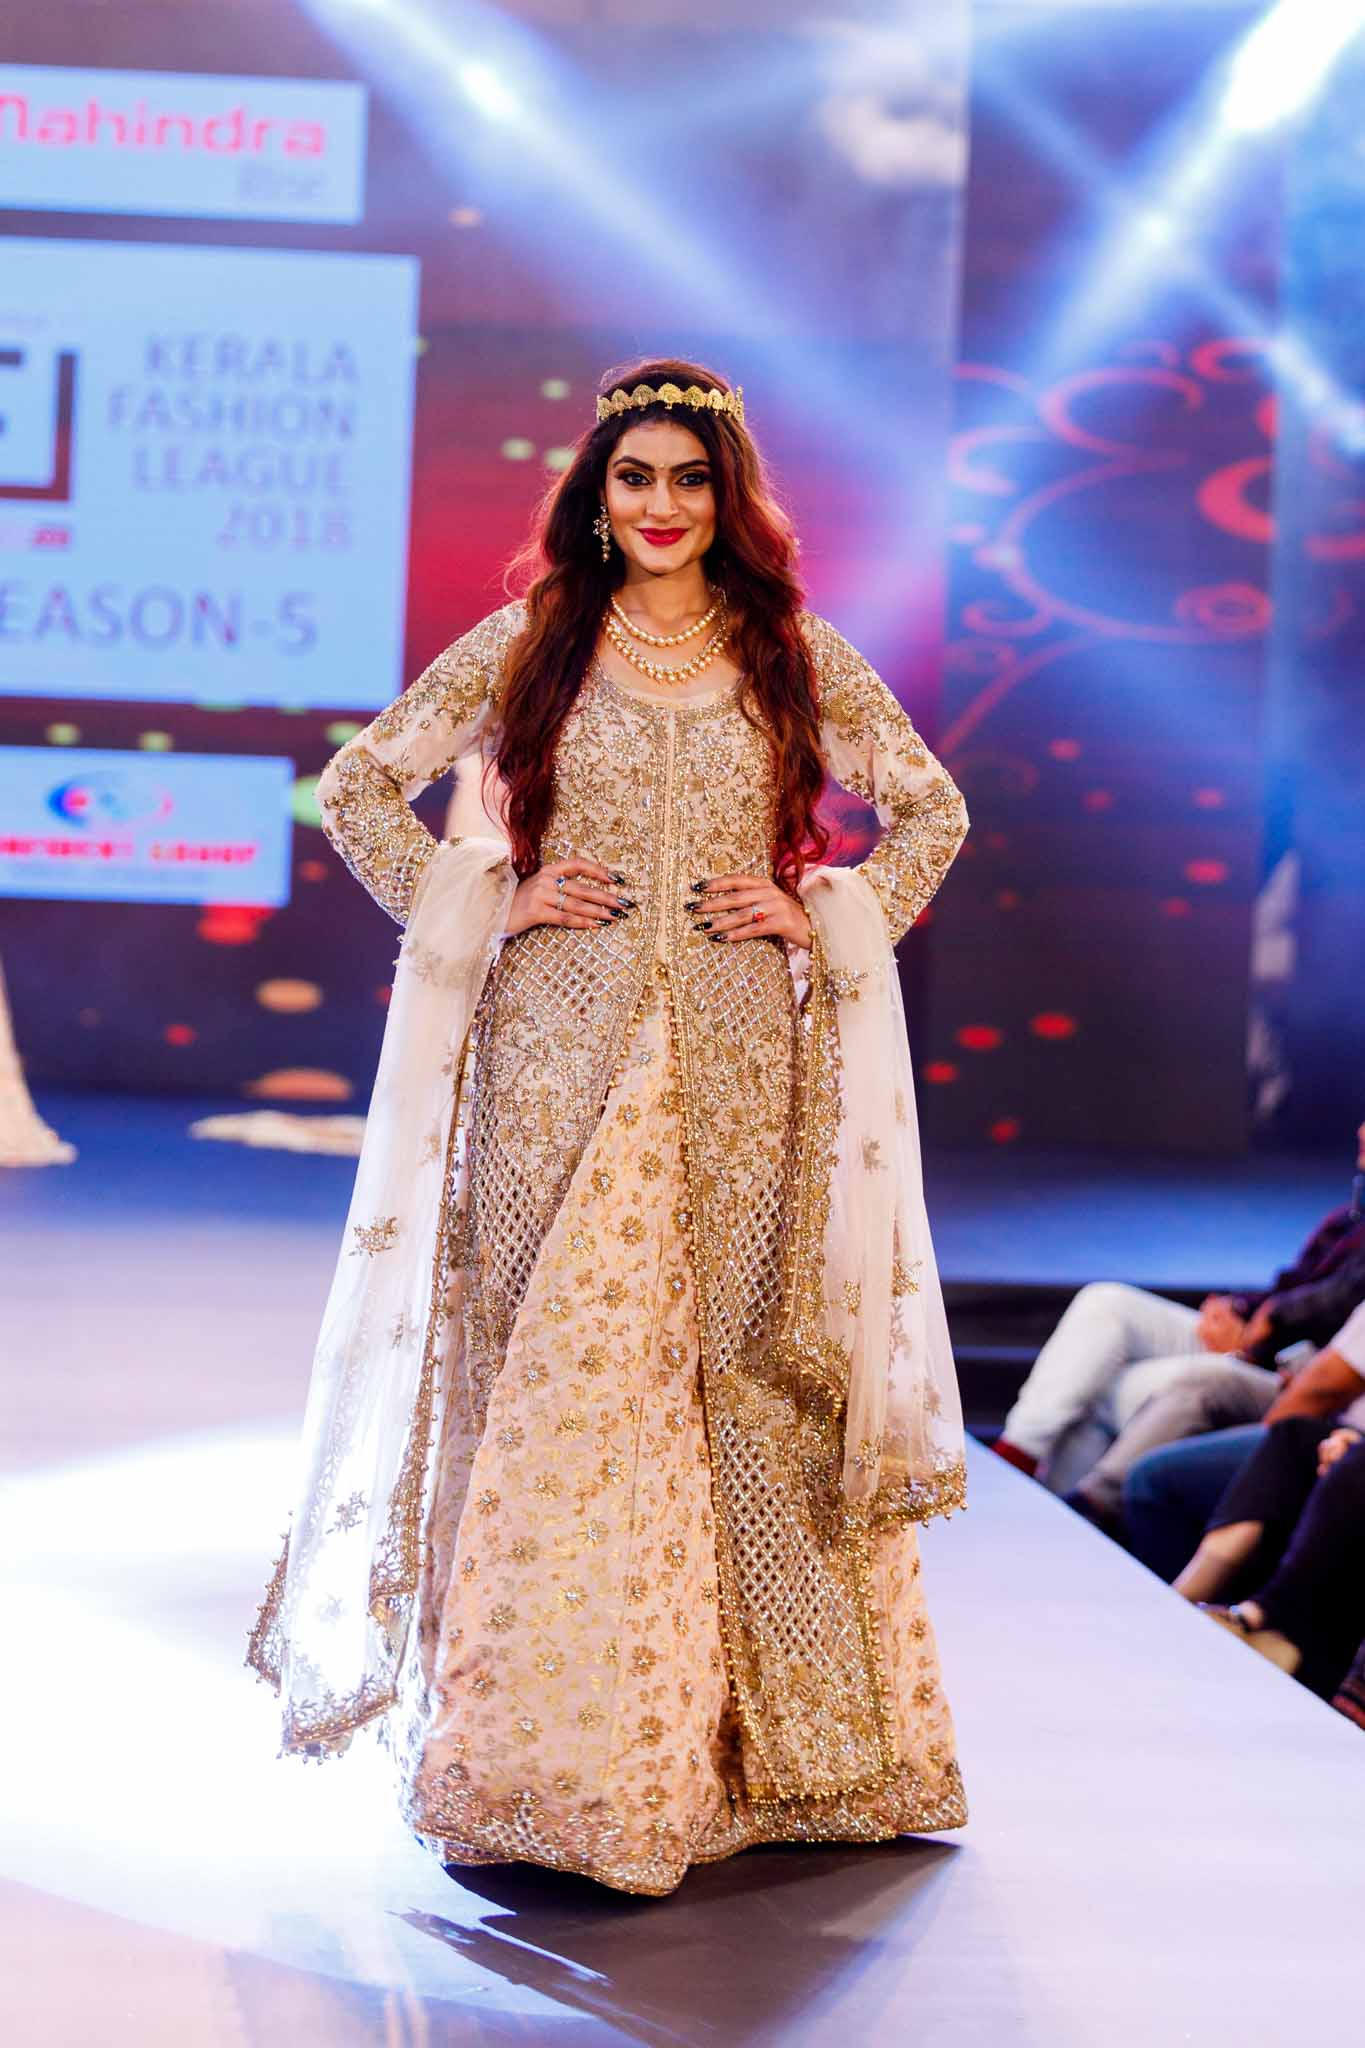 KERALA FASHION LEAGUE Season-5